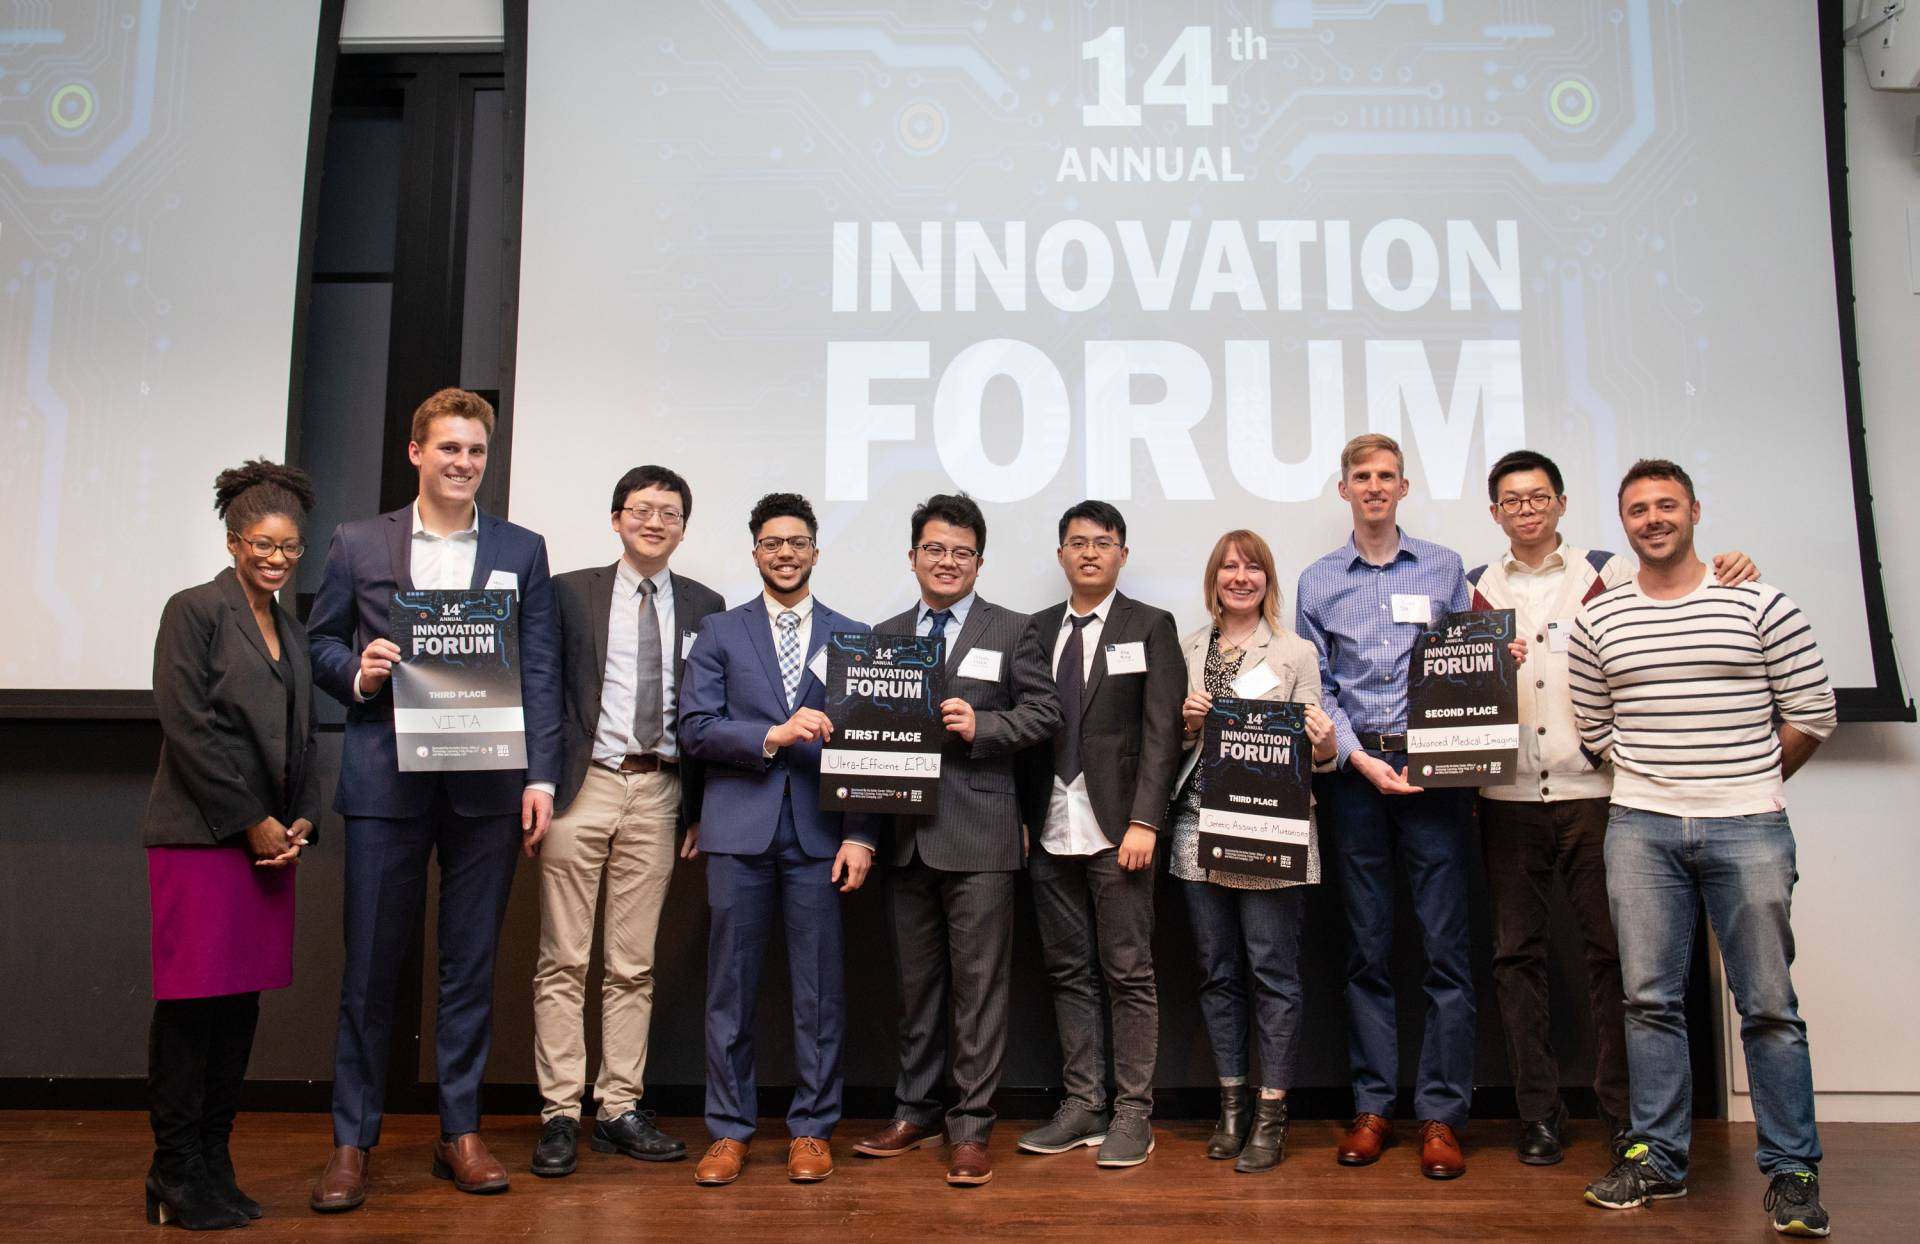 The winners on stage at the Innovation Forum